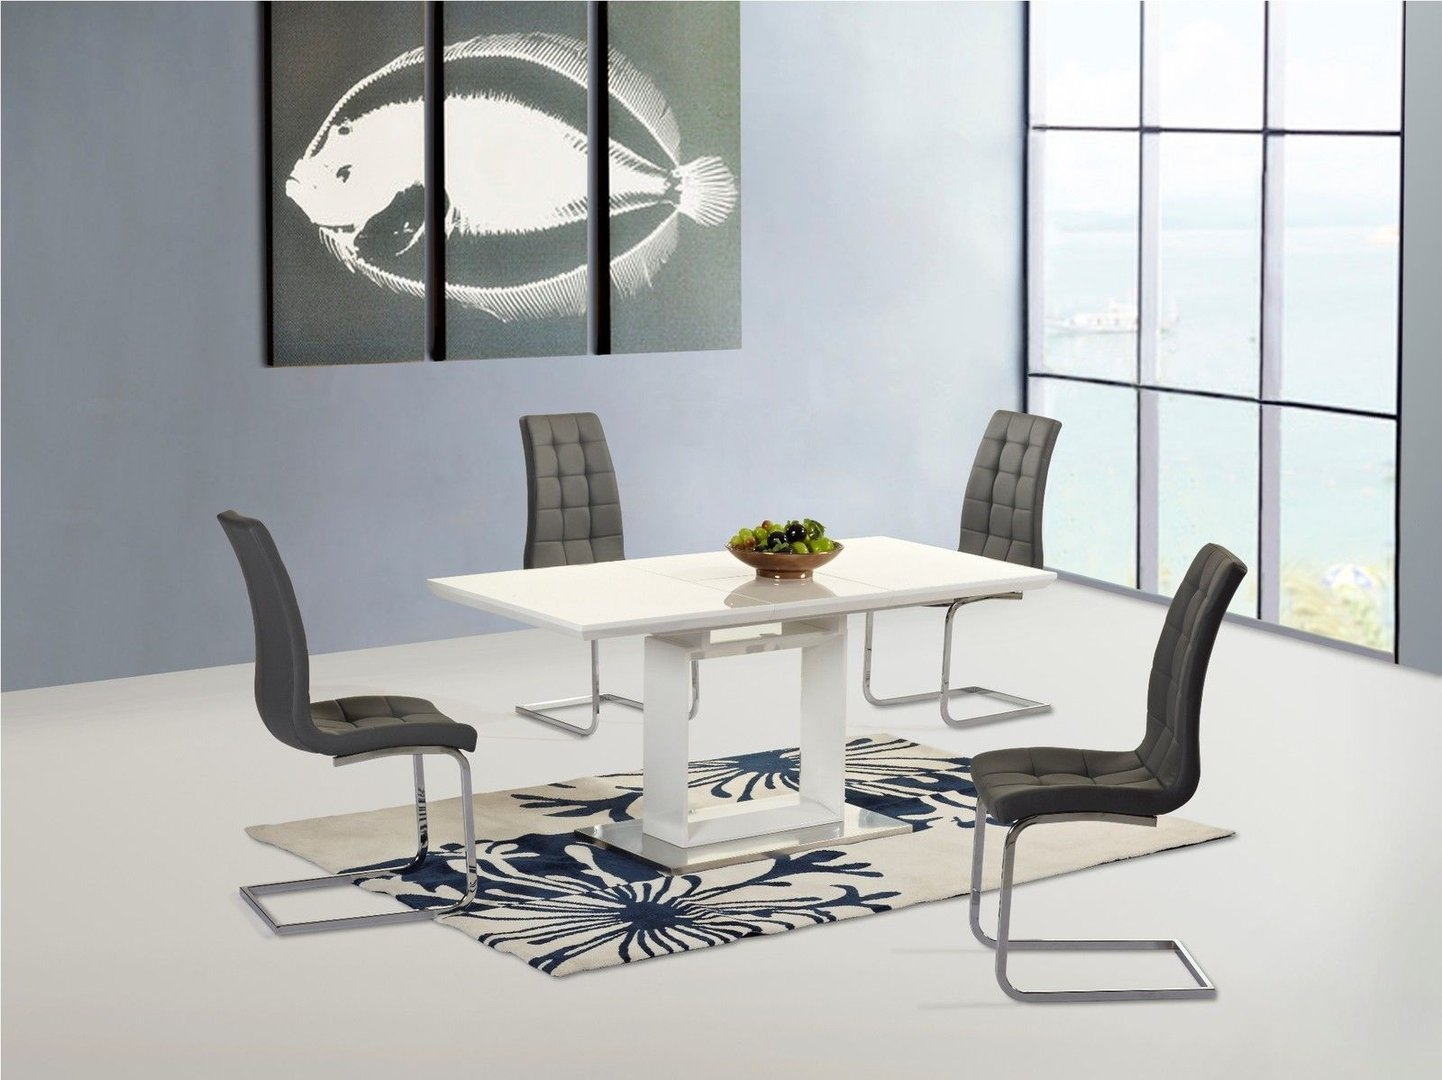 New white high gloss extending dining table and 4 grey chairs : NEWWHITEHIGHGLOSSEXTENDINGDININGTABLEAND4GREYCHAIRSSET from www.homegenies.co.uk size 1442 x 1080 jpeg 160kB